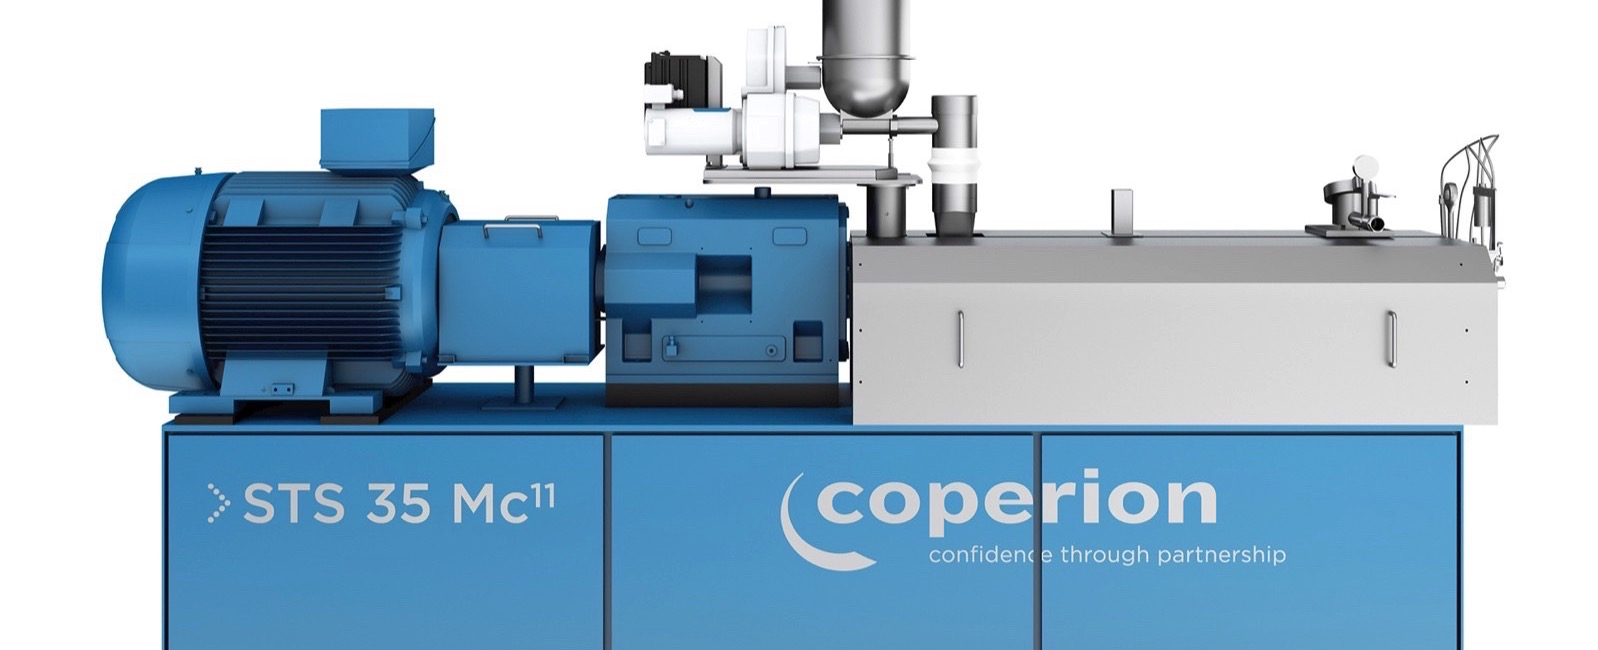 Coperion and Coperion K-Tron at Chinaplas 2018: Total Technology Solutions for Plastics Processing